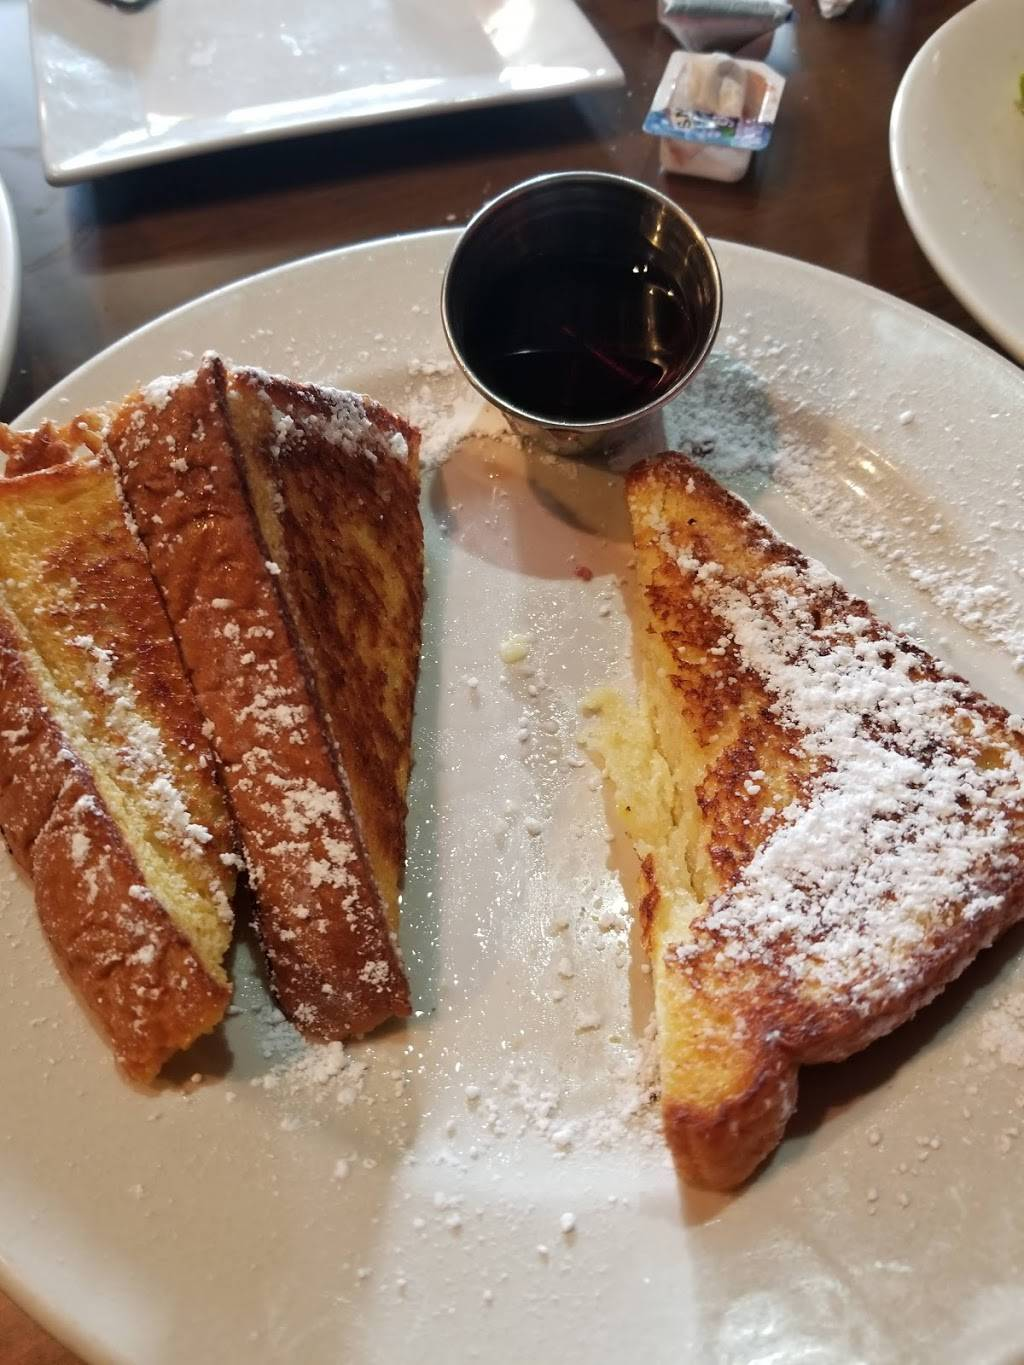 Daisys Grill | restaurant | 200 Old River Rd, Edgewater, NJ 07020, USA | 2019411567 OR +1 201-941-1567